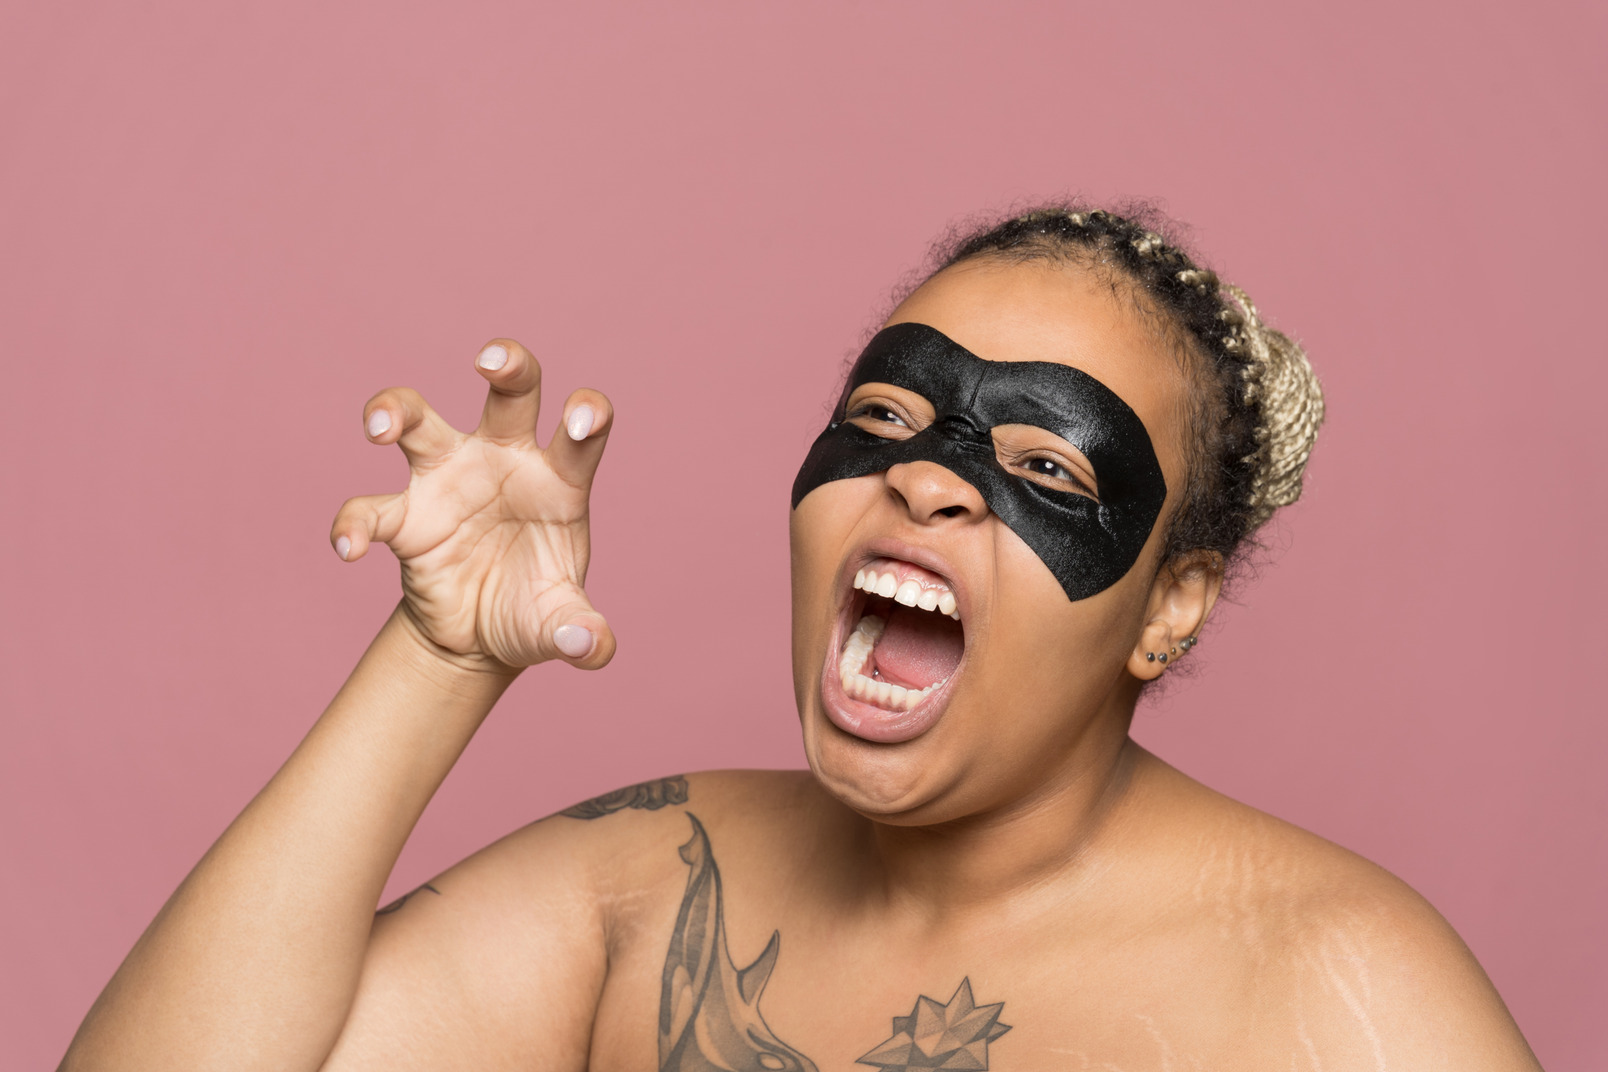 Plump african-american woman scaring others